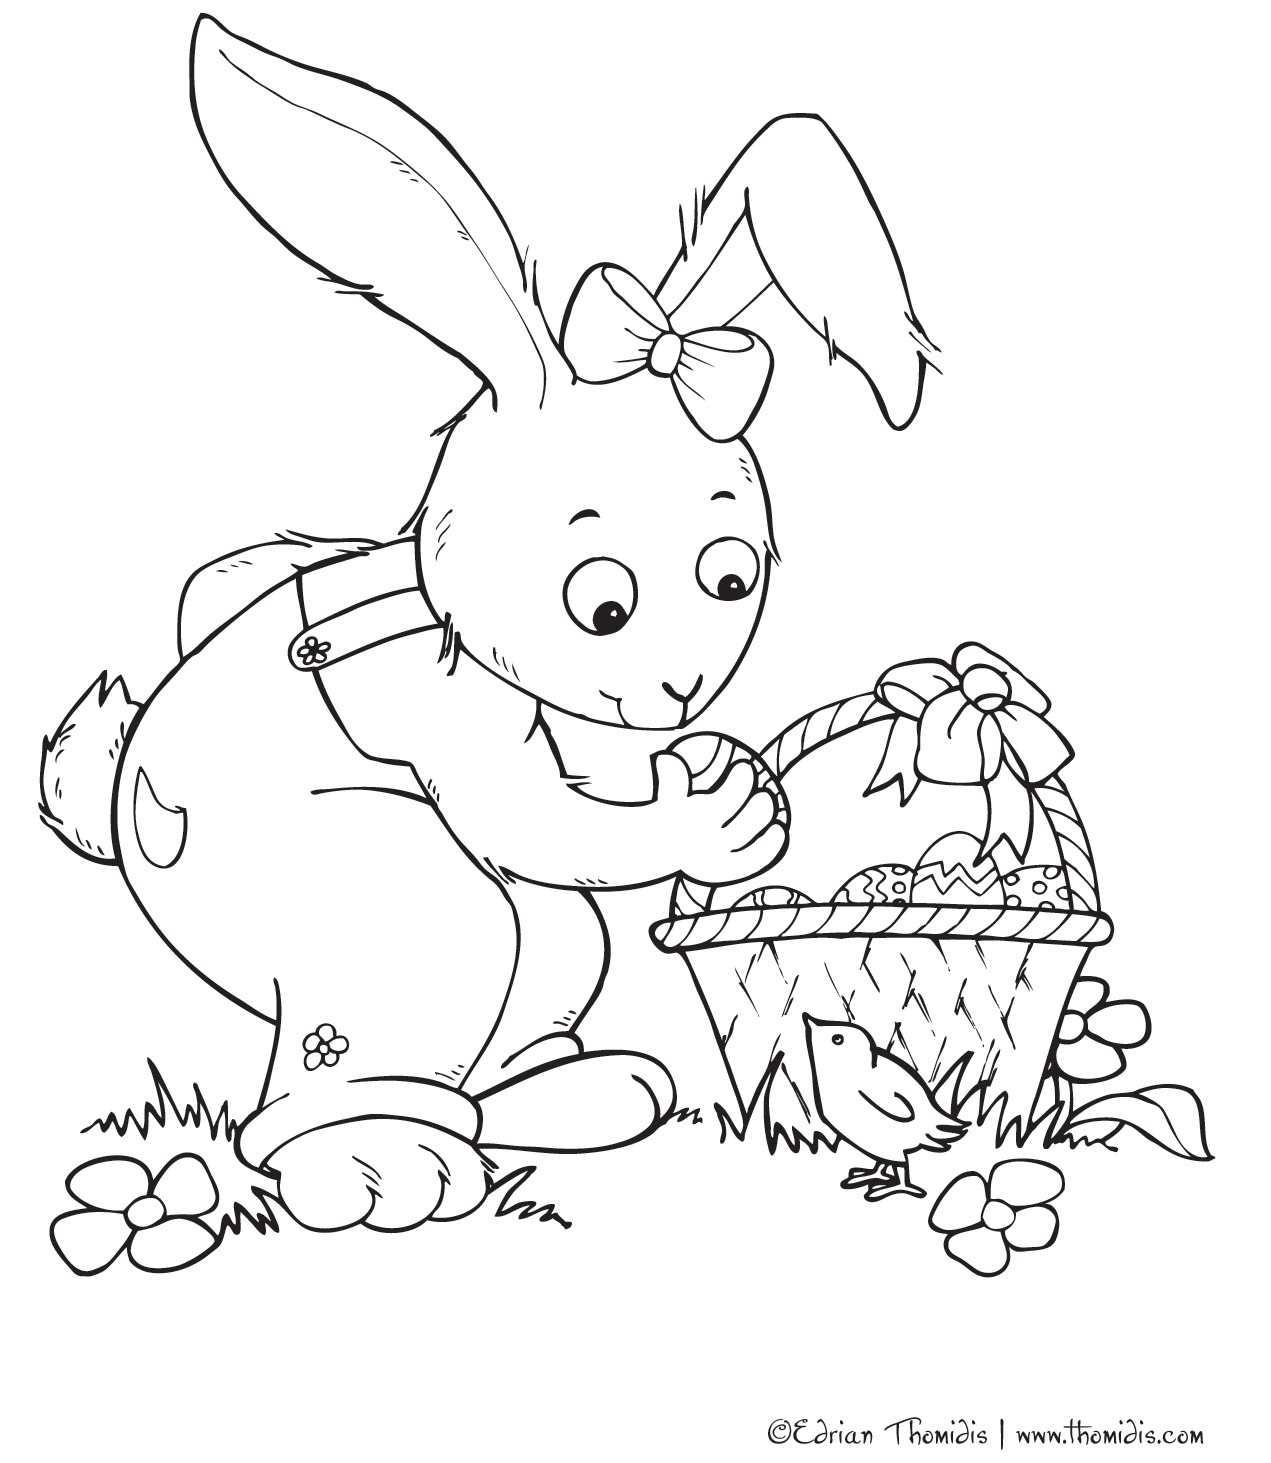 bunny color page - cute bunny coloring pages free printable pictures